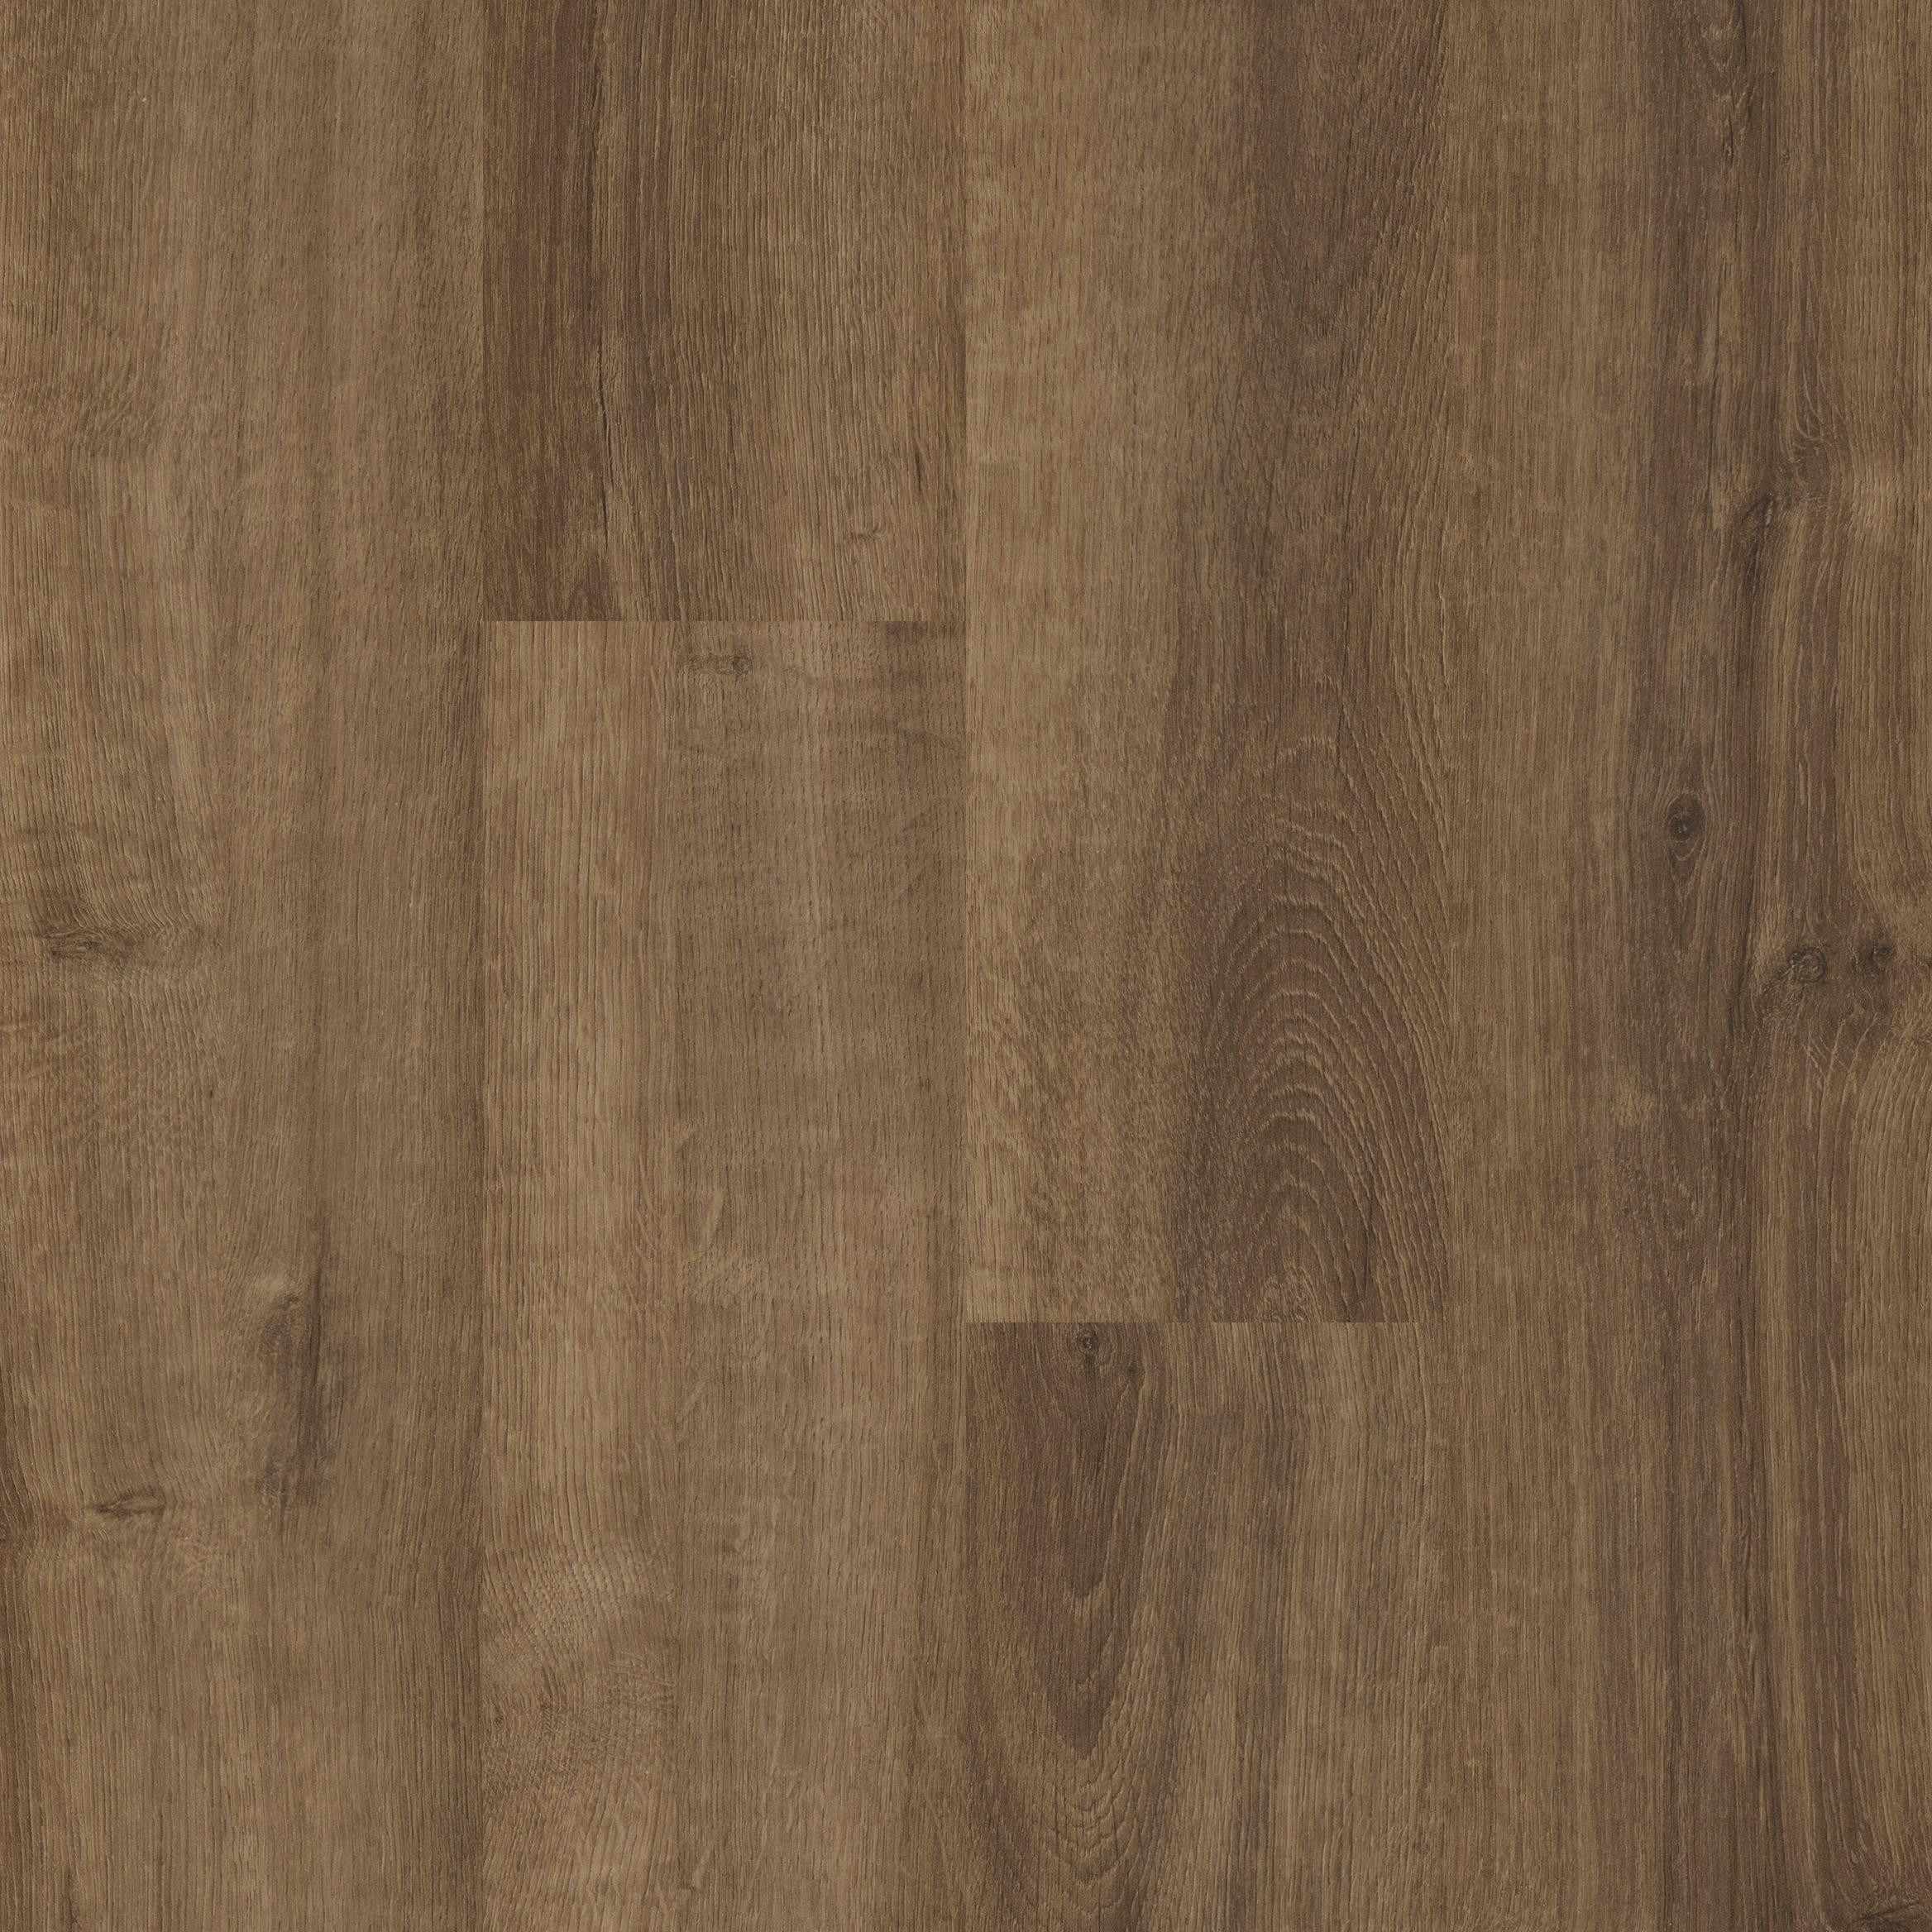 hickory hardwood flooring cost of ivc moduleo horizon distressed stagecoach hickory 6 waterproof with regard to ivc moduleo horizon distressed stagecoach hickory 6 waterproof click together lvt vinyl plank flooring